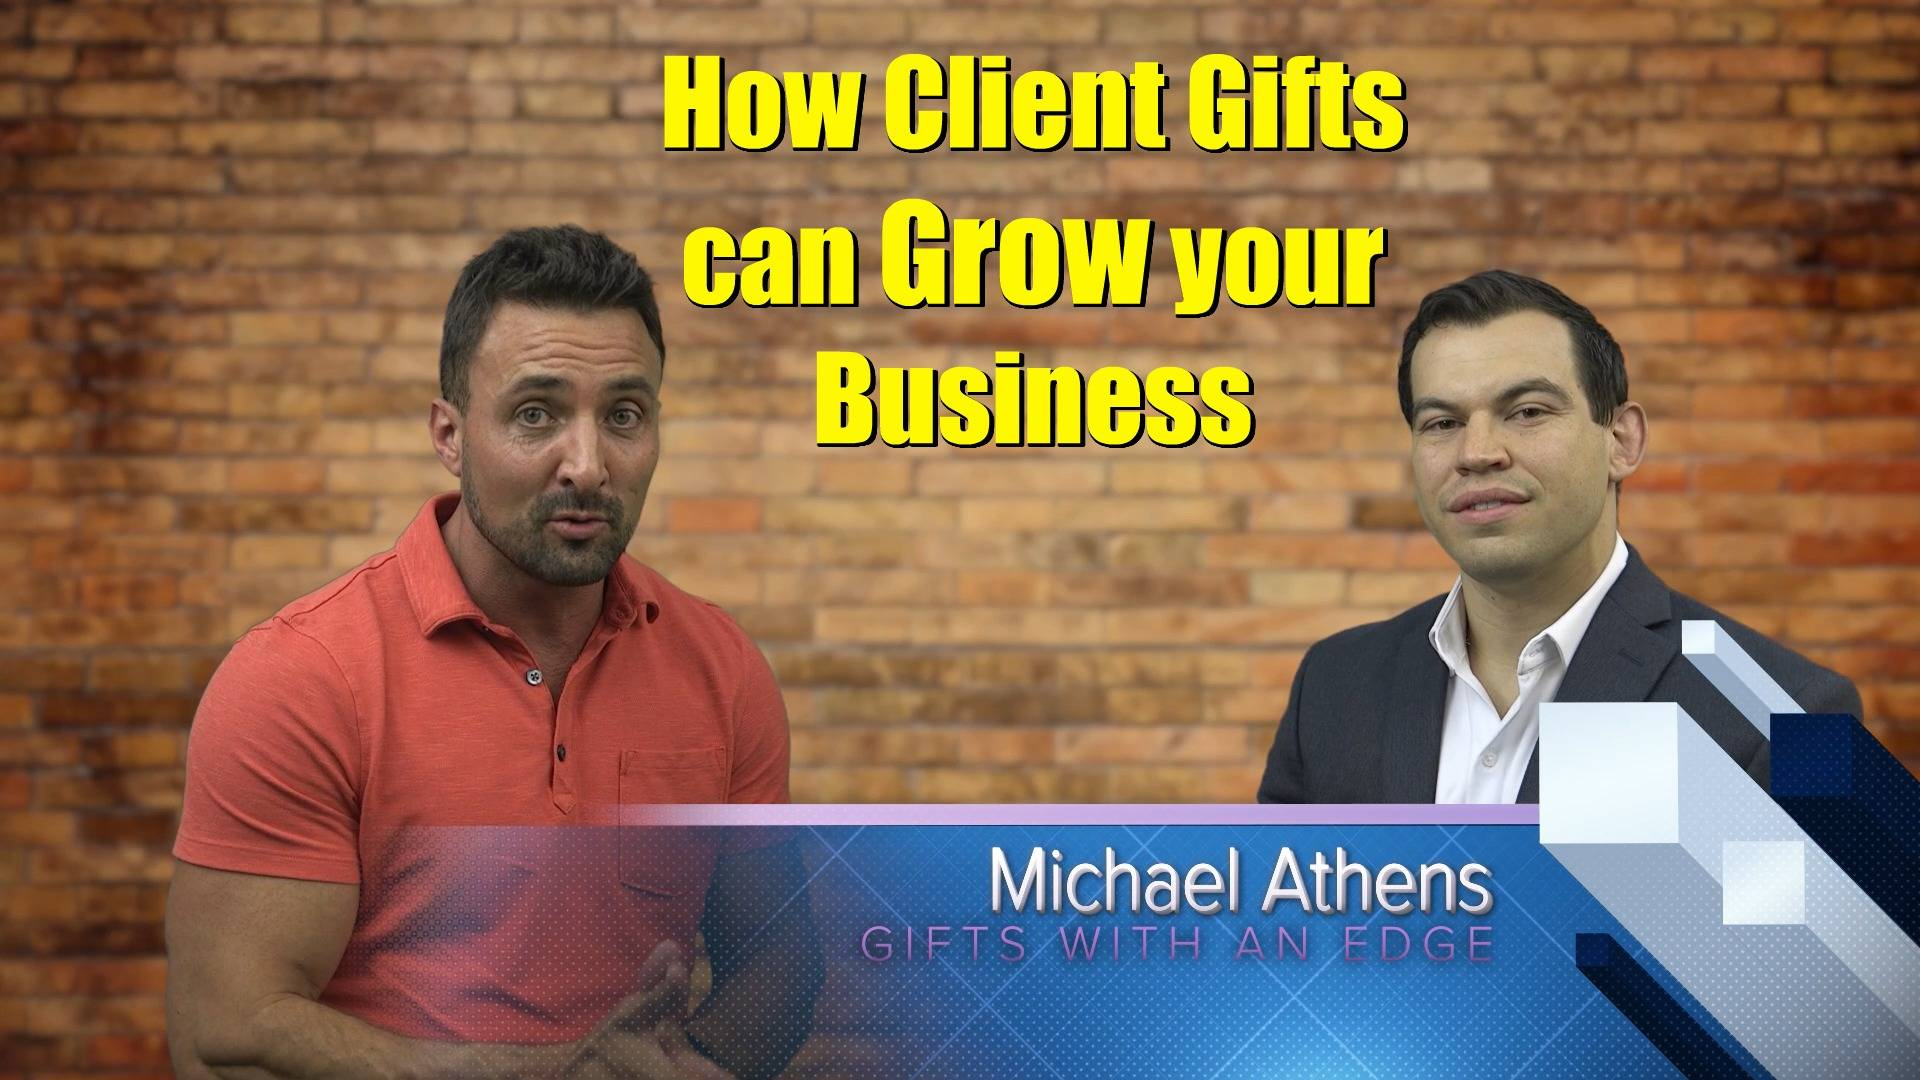 How loan officers can grow their reviews and referrals through their gifts.